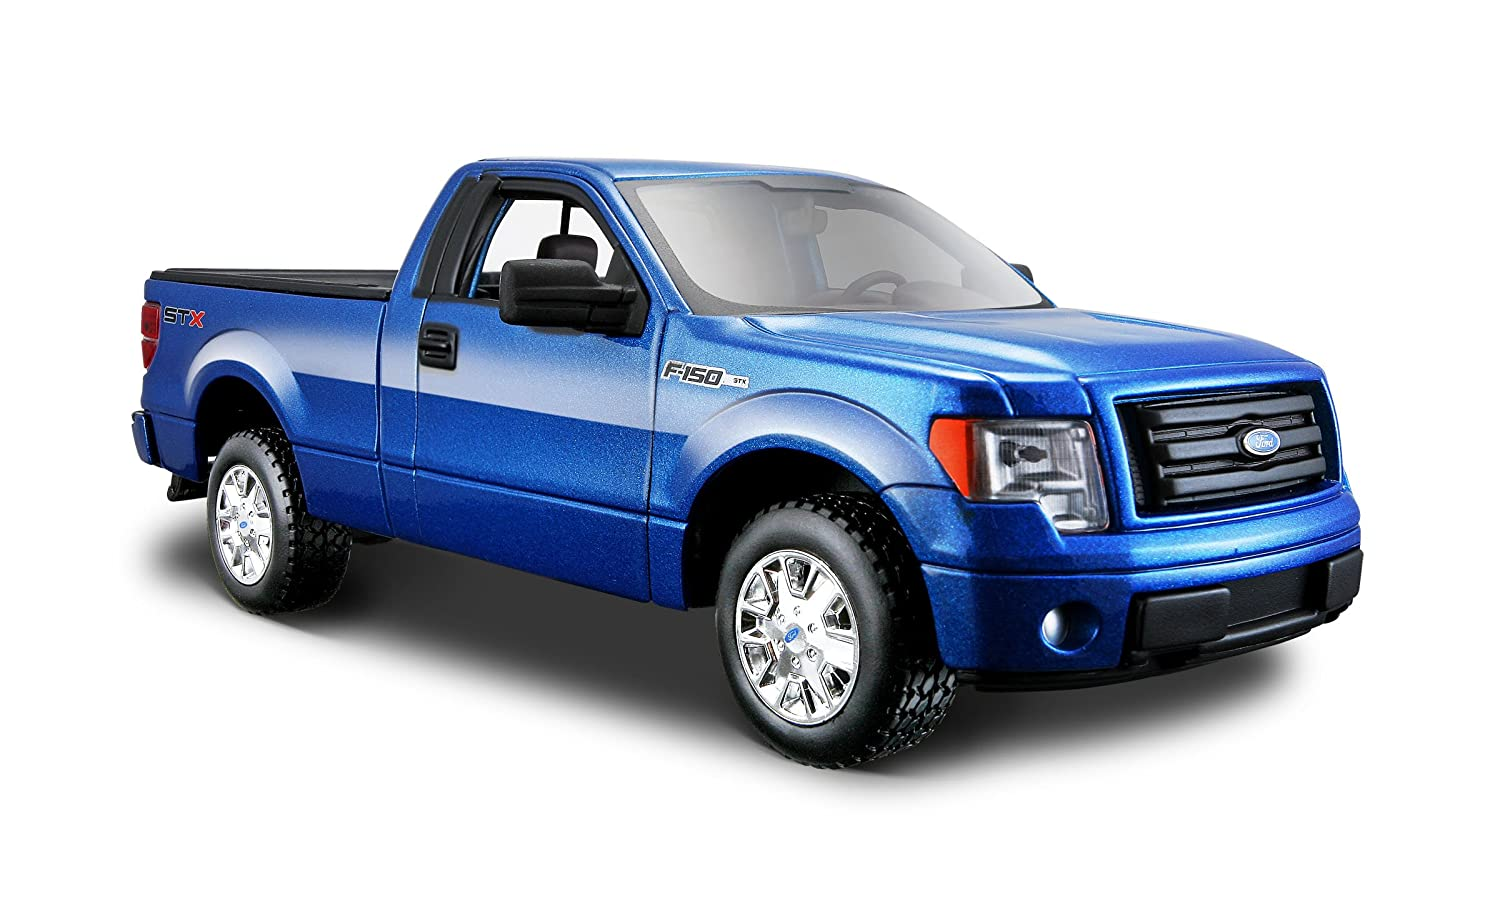 Maisto Special Edition Metallic Blue 2010 Ford F-150 STX Diecast Vehicle (1:24 Scale) 31270-60870063